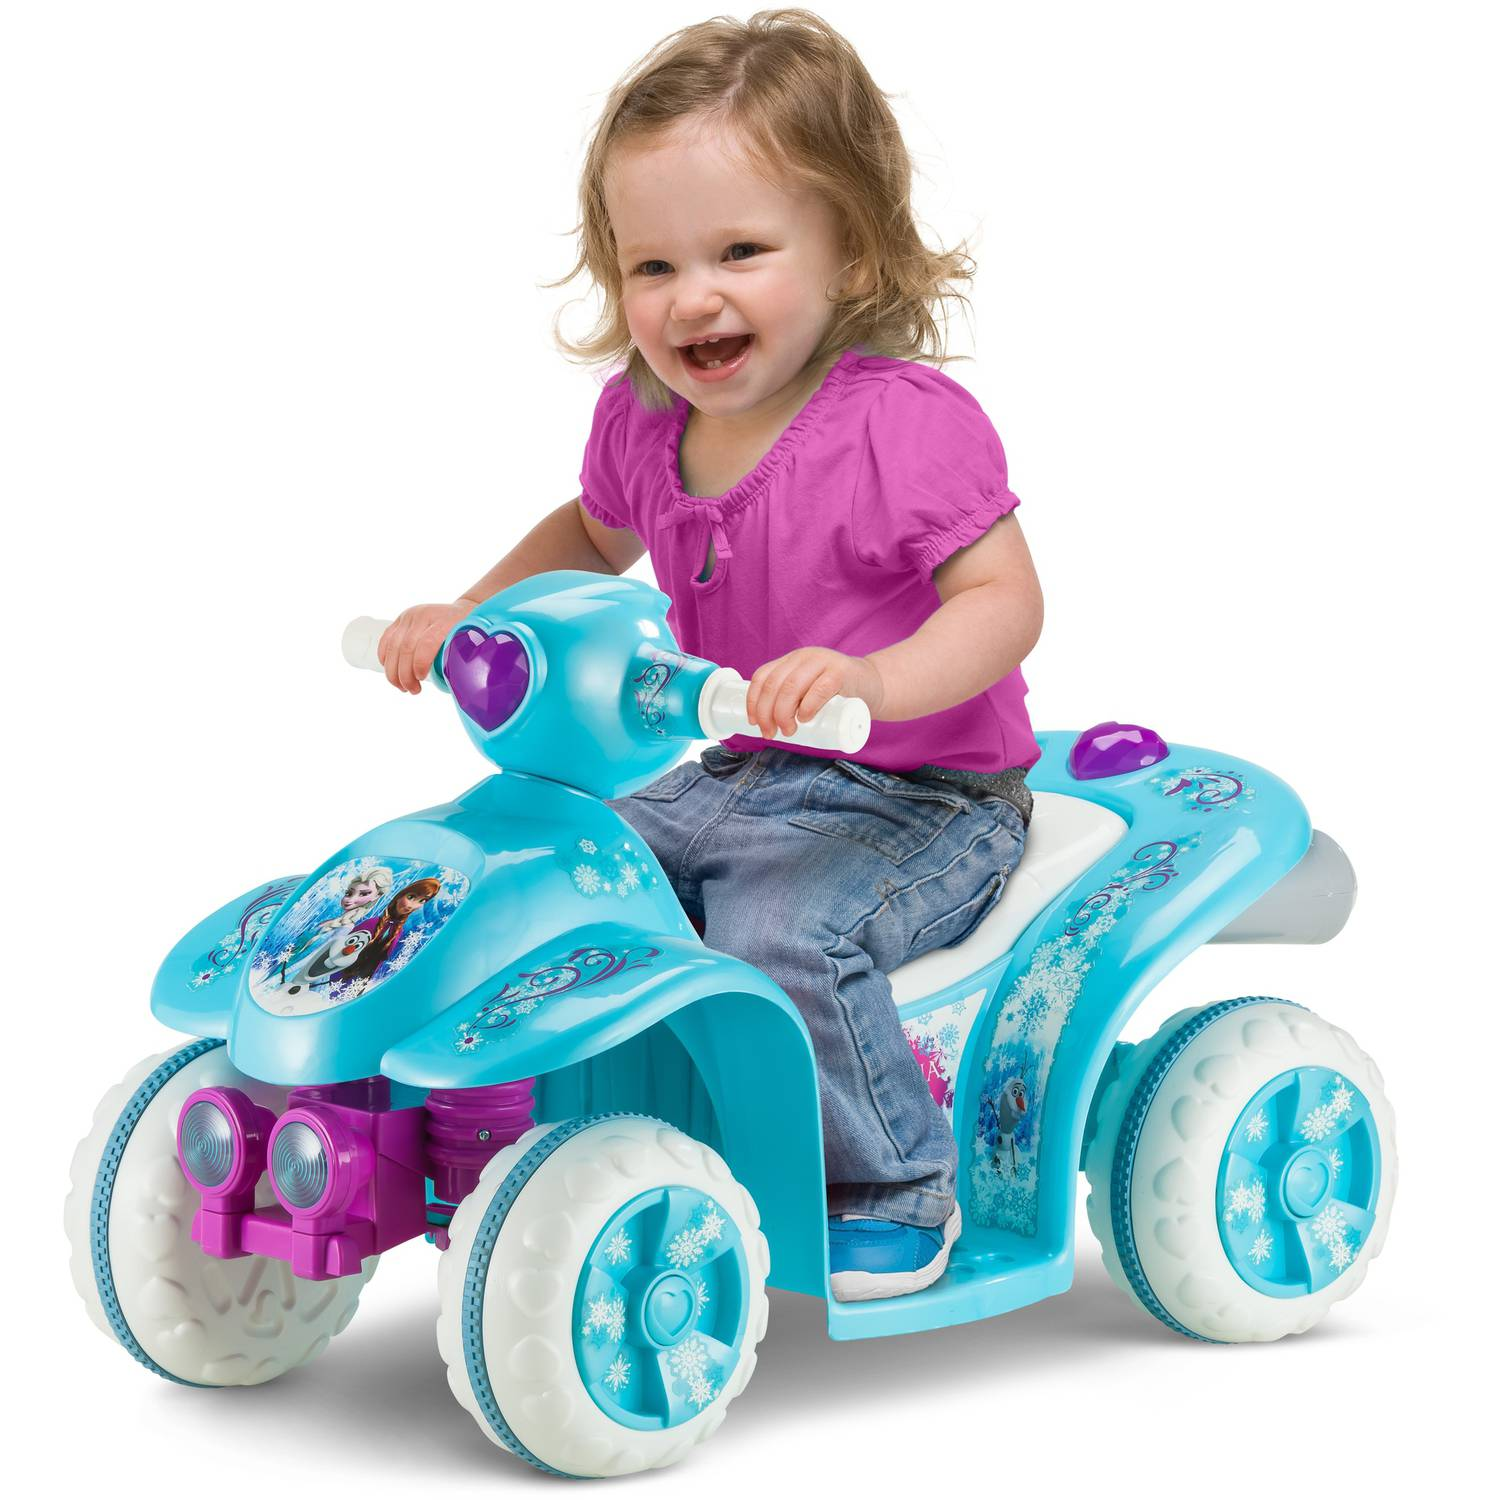 Disney Frozen Toddler Quad, Blue